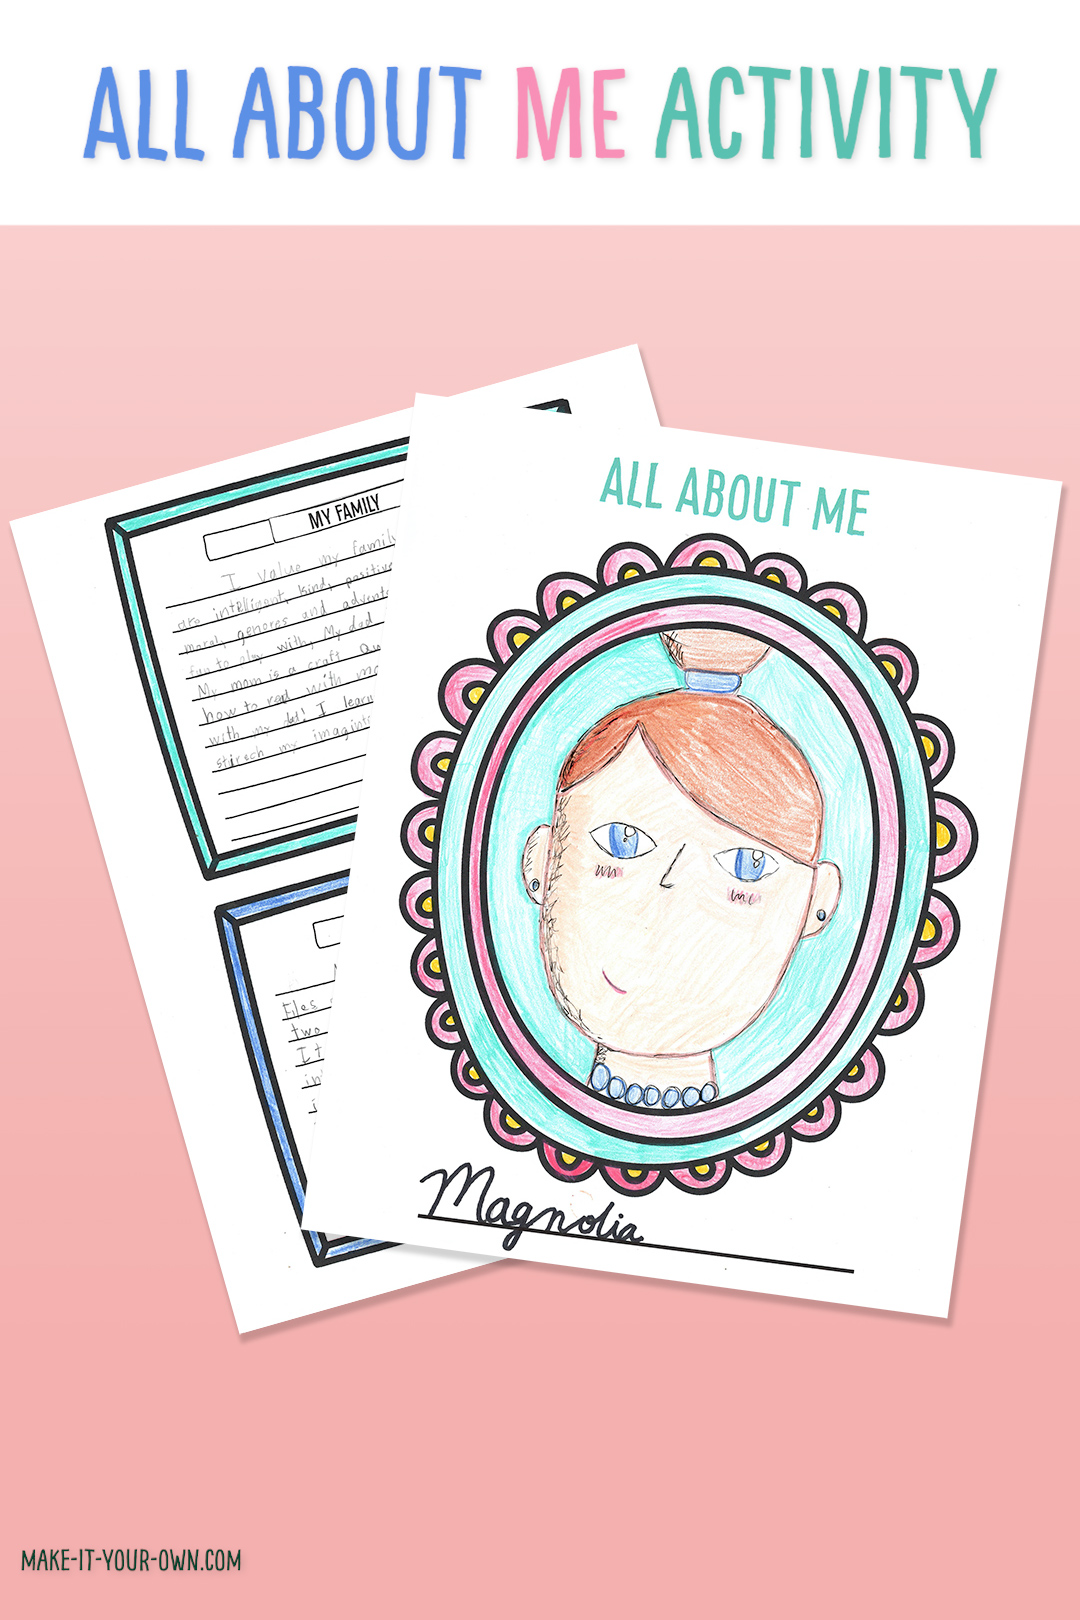 Printable All About Me Activity for homeschooling or in the classroom!  This self portrait and writing template comes with a page of writing prompts perfect for getting to know you, building community and getting back to school! #printable #printables #allaboutme #backtoschool #writingactivity #homeschooling  #selfportrait #onlineschooling #freeprintable